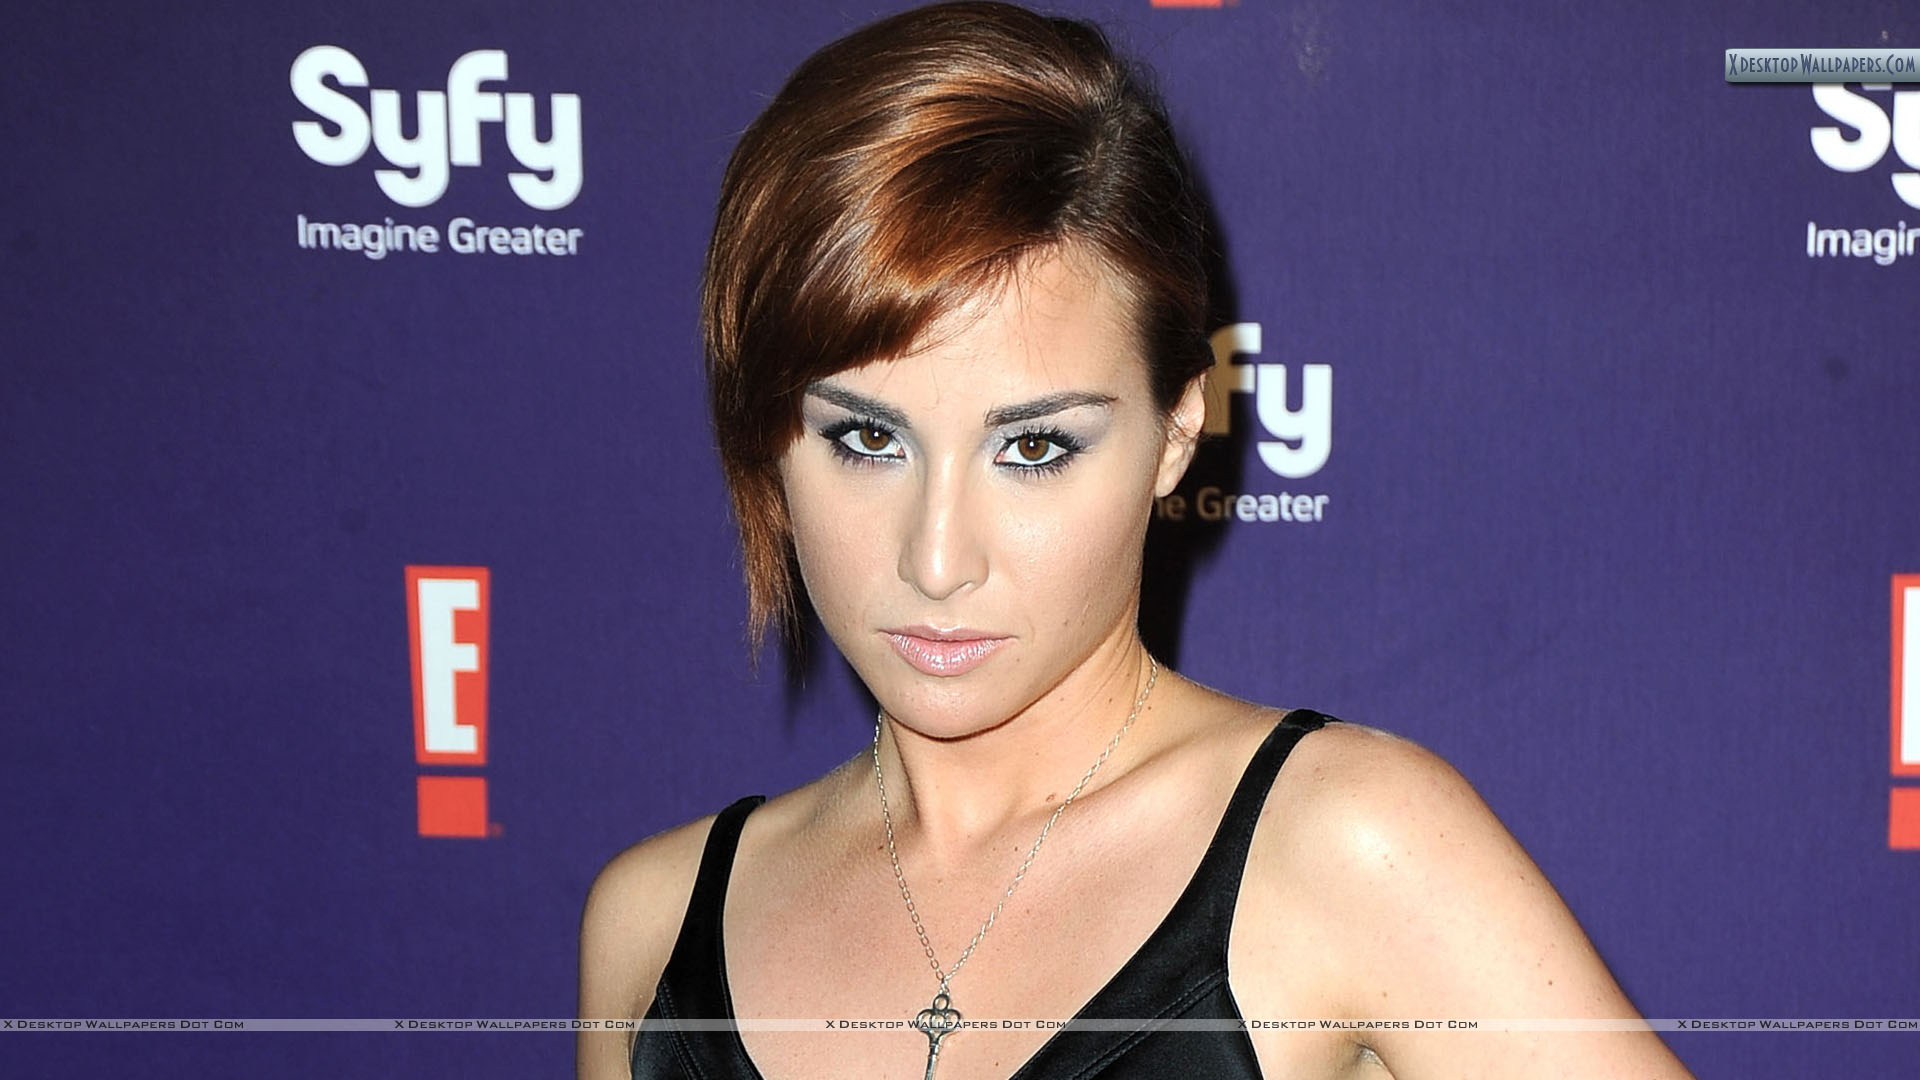 The 28-year old daughter of father (?) and mother(?) Allison Scagliotti in 2019 photo. Allison Scagliotti earned a  million dollar salary - leaving the net worth at 4 million in 2019